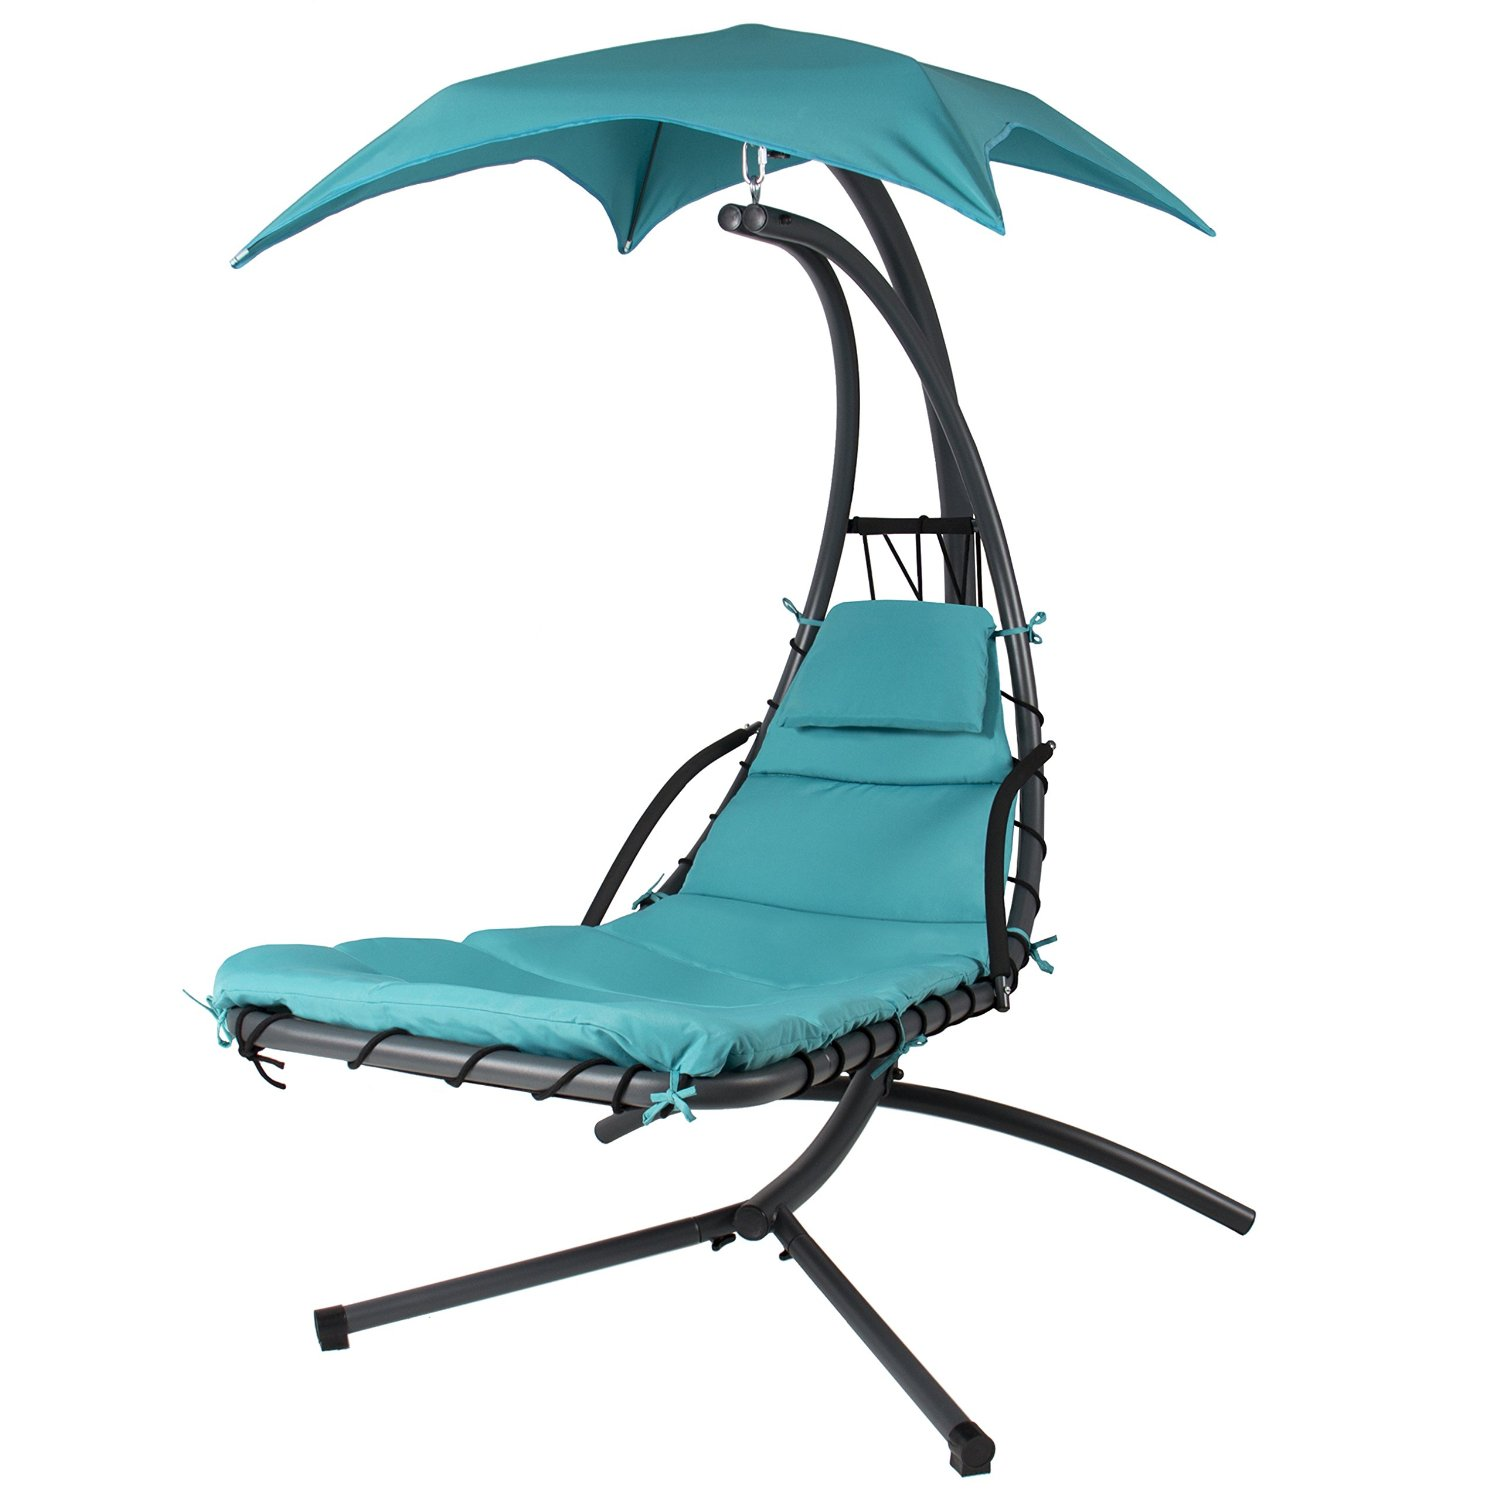 canopy chairs best price knoll conference chair amazon 39s drops on hanging chaise lounger swing